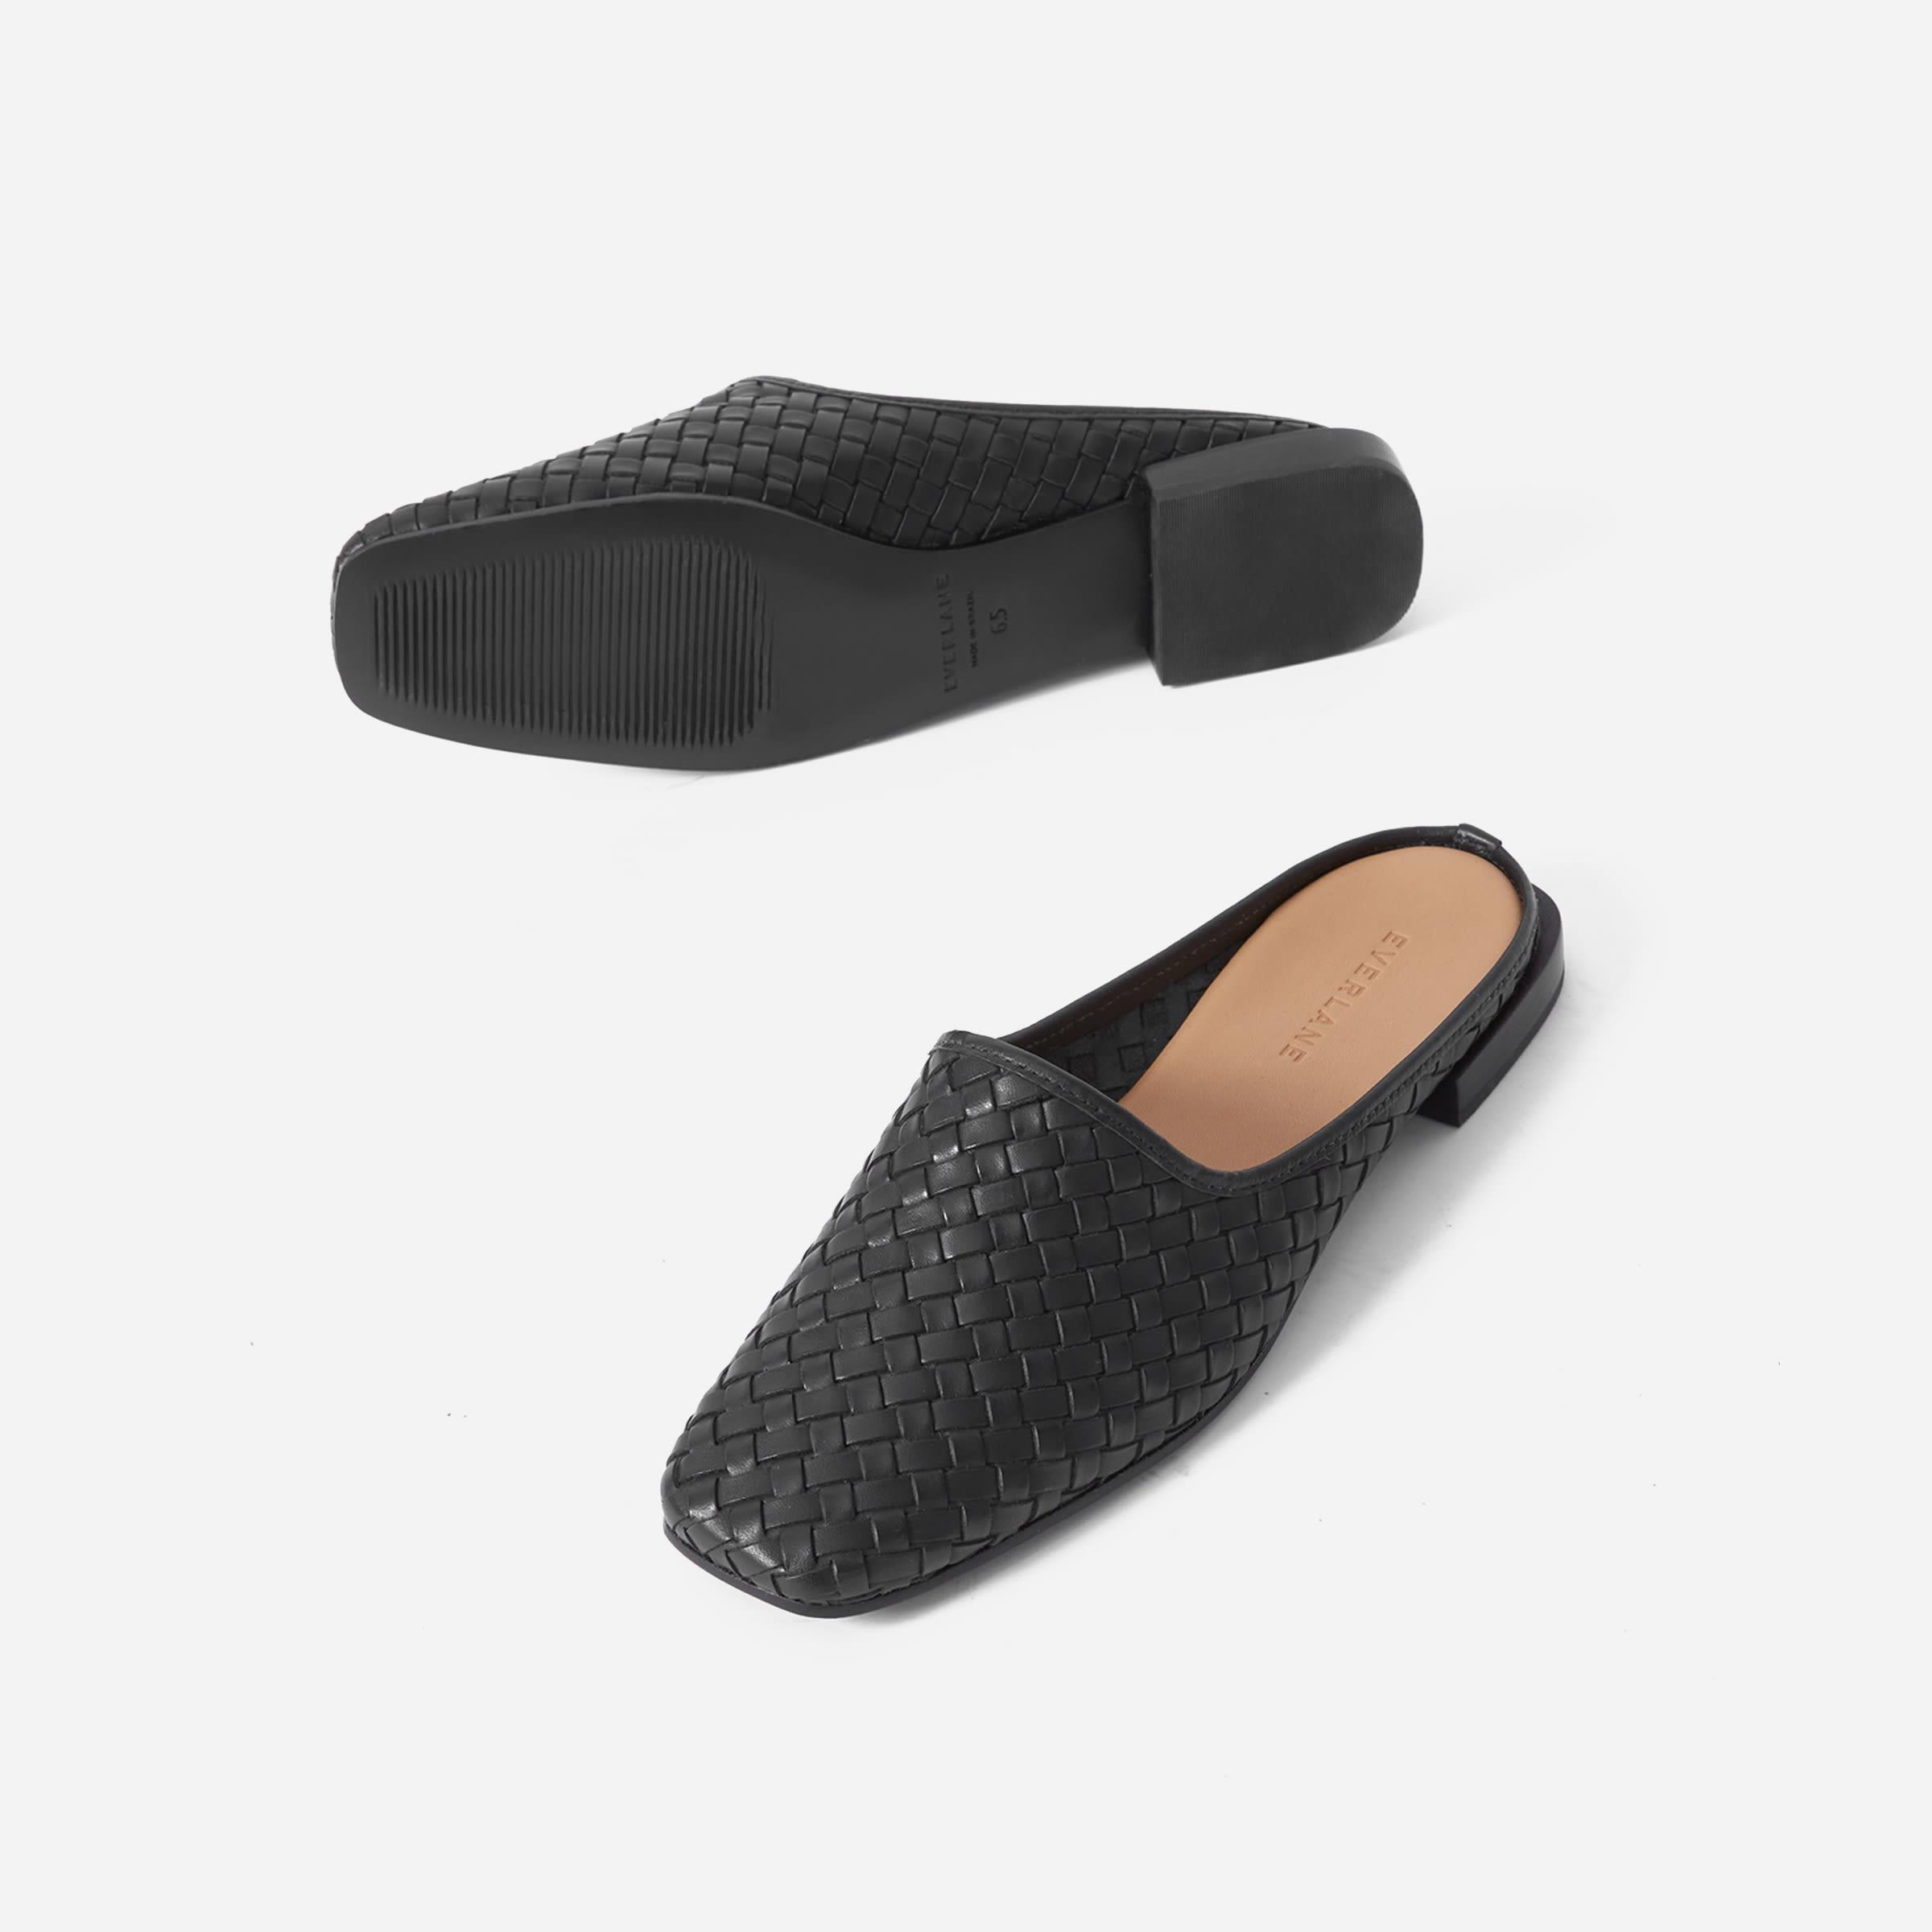 The Woven Leather Mule 2